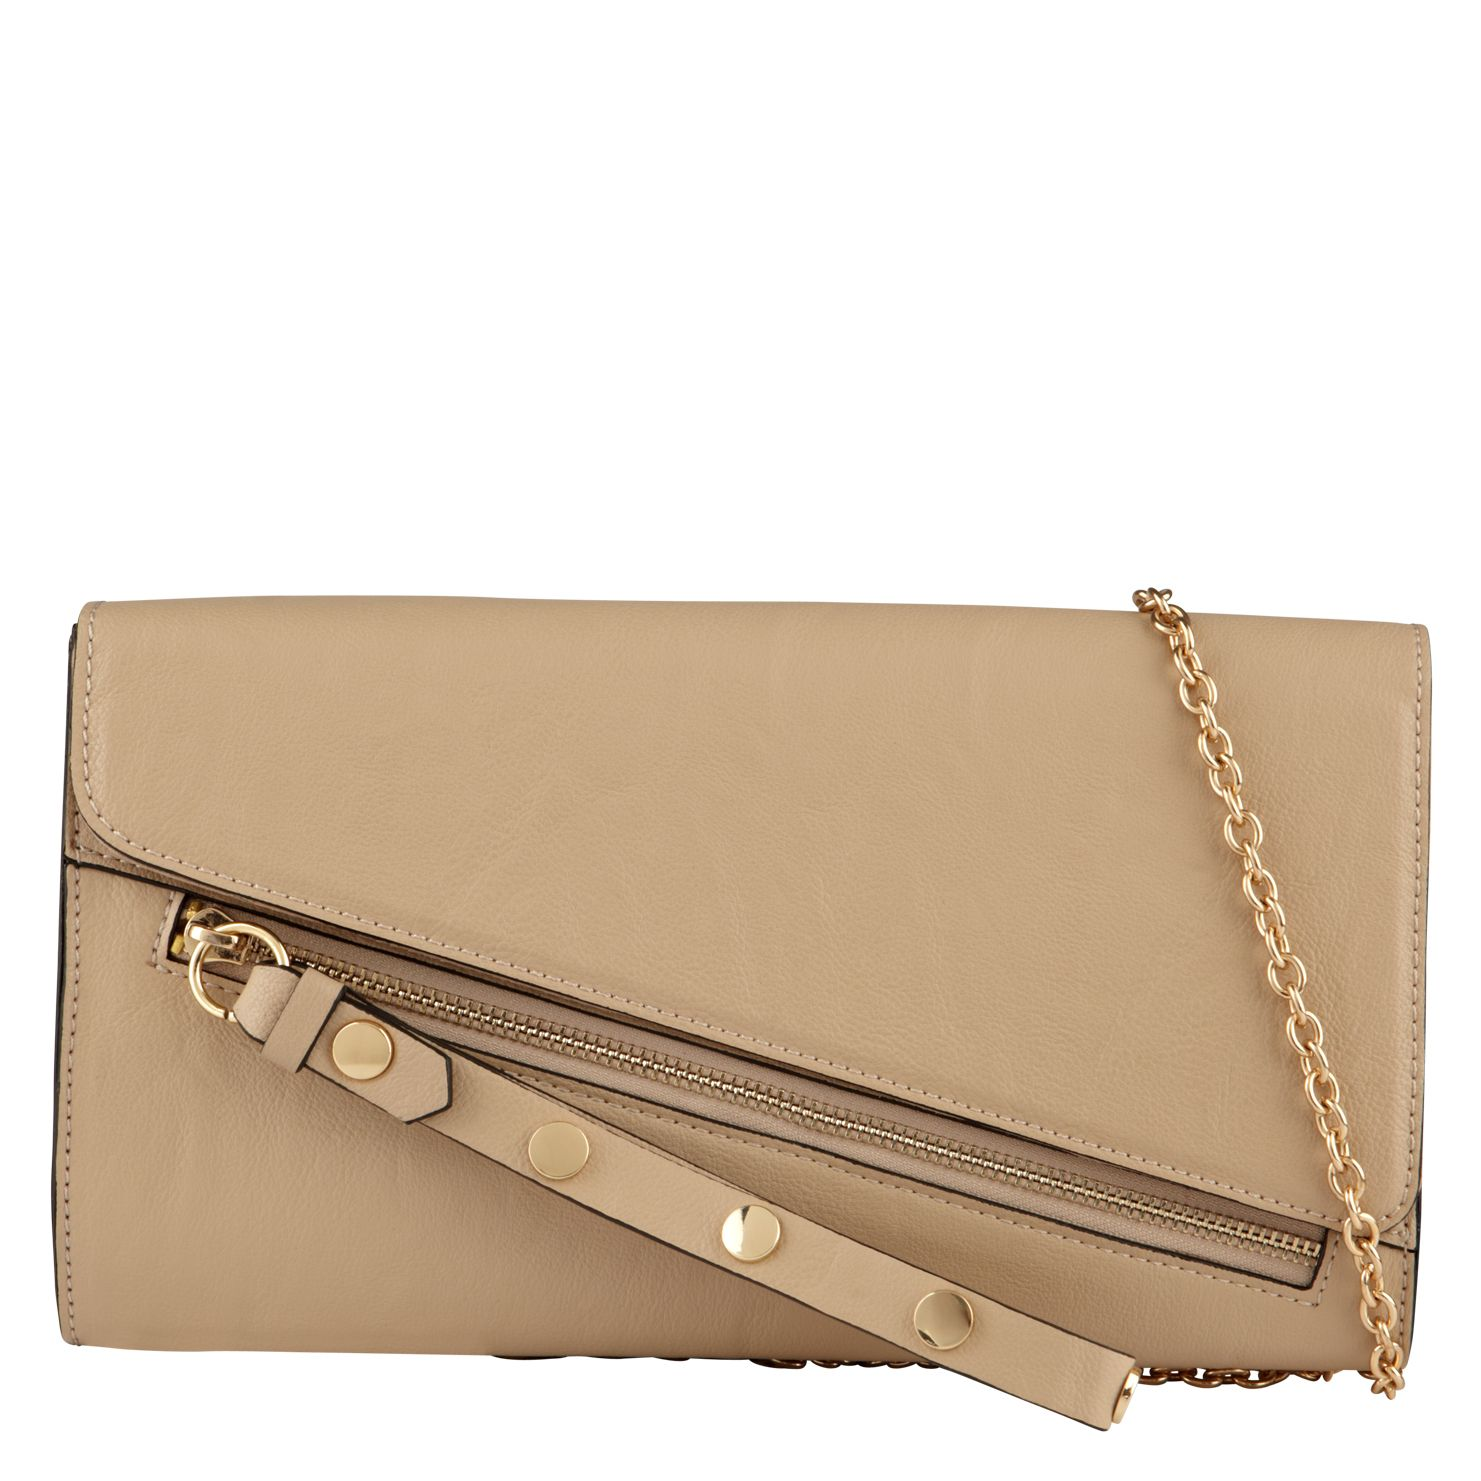 Folorney clutch bag